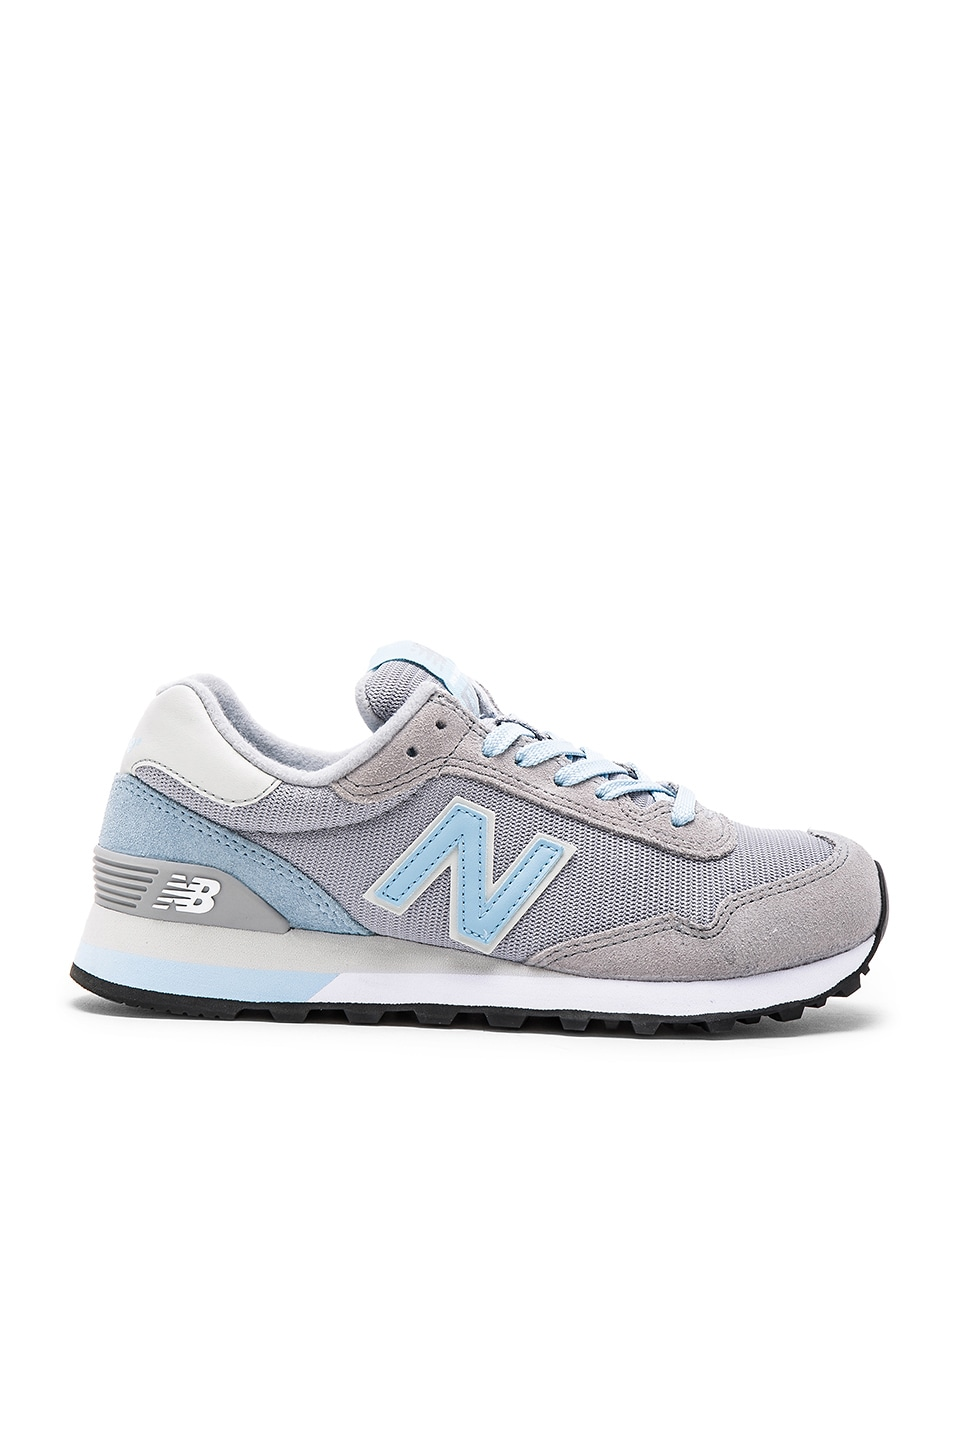 New Balance Classics Modern Classics Collection Sneaker in Grey & Blue